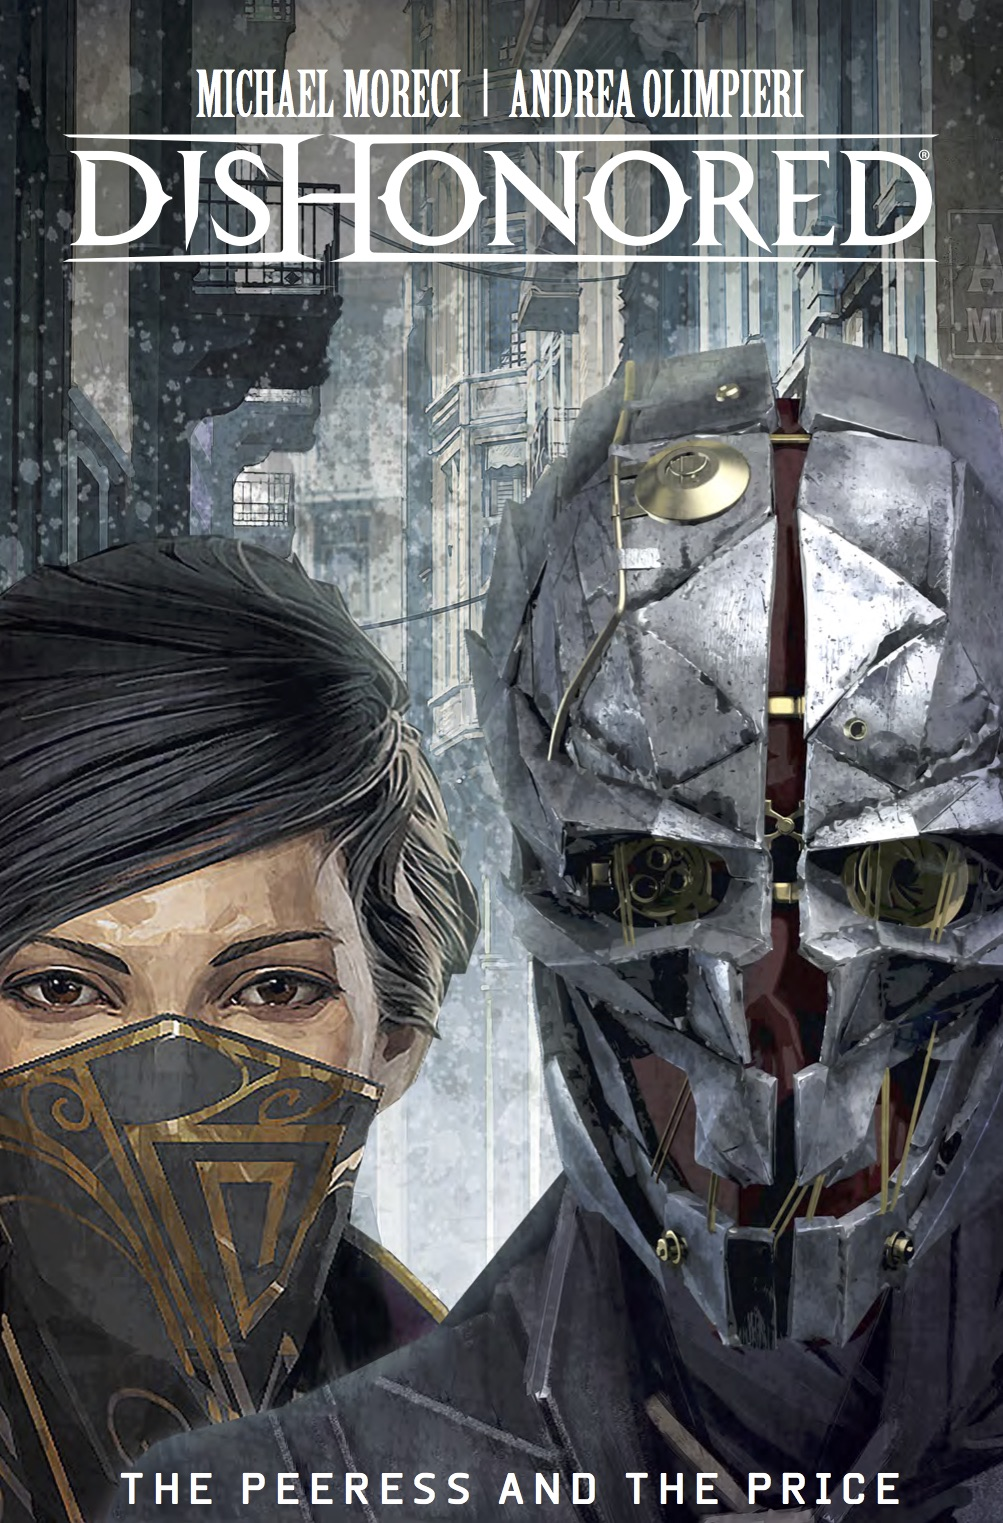 http://images.eurogamer.net/2018/articles/2018-02-09-22-58/Dishonored_Collection_vol2_Cover.jpg